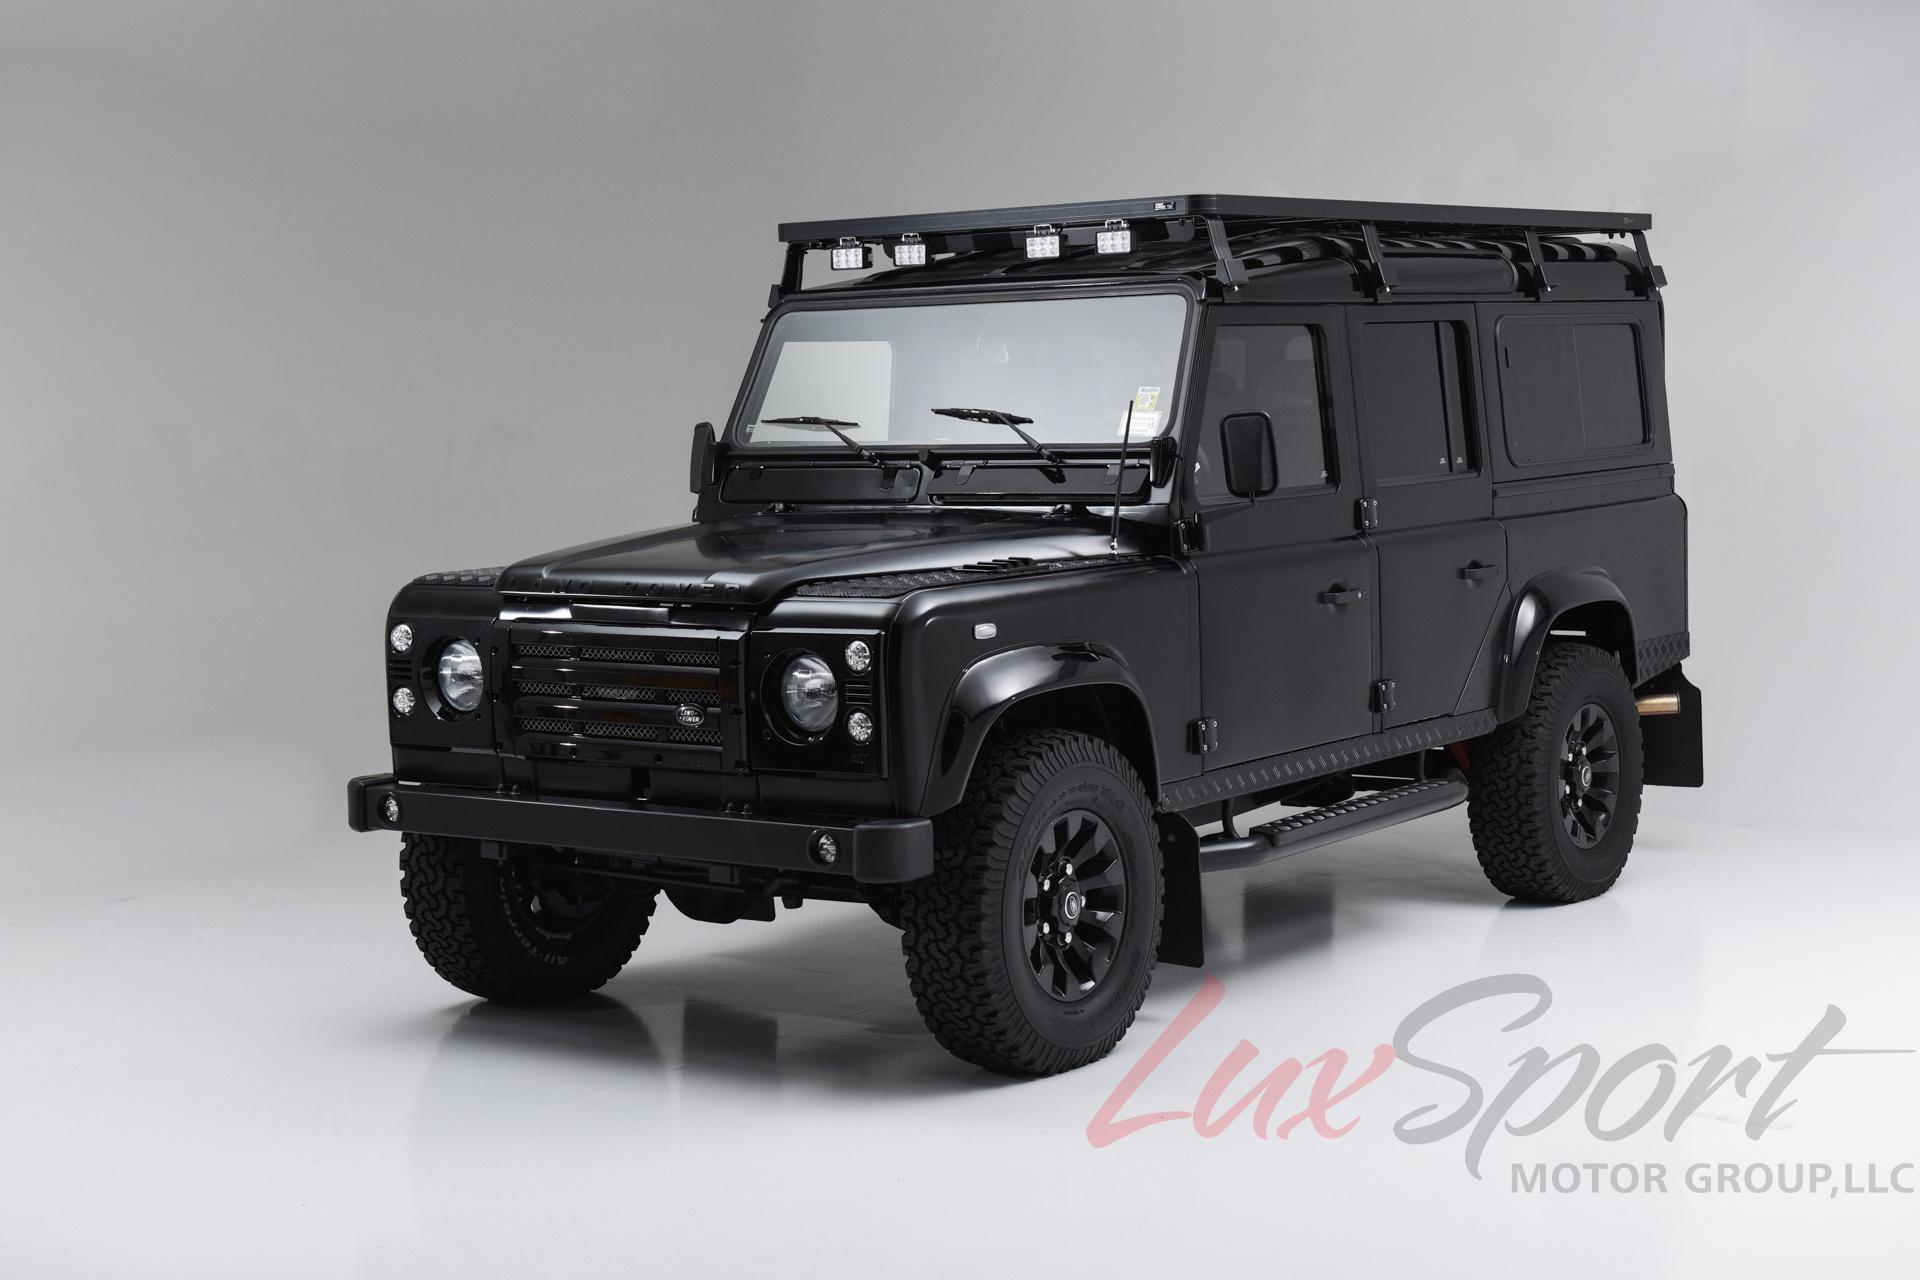 rover new landrover for sale defender news cars motor classifieds cost land brand hemmings